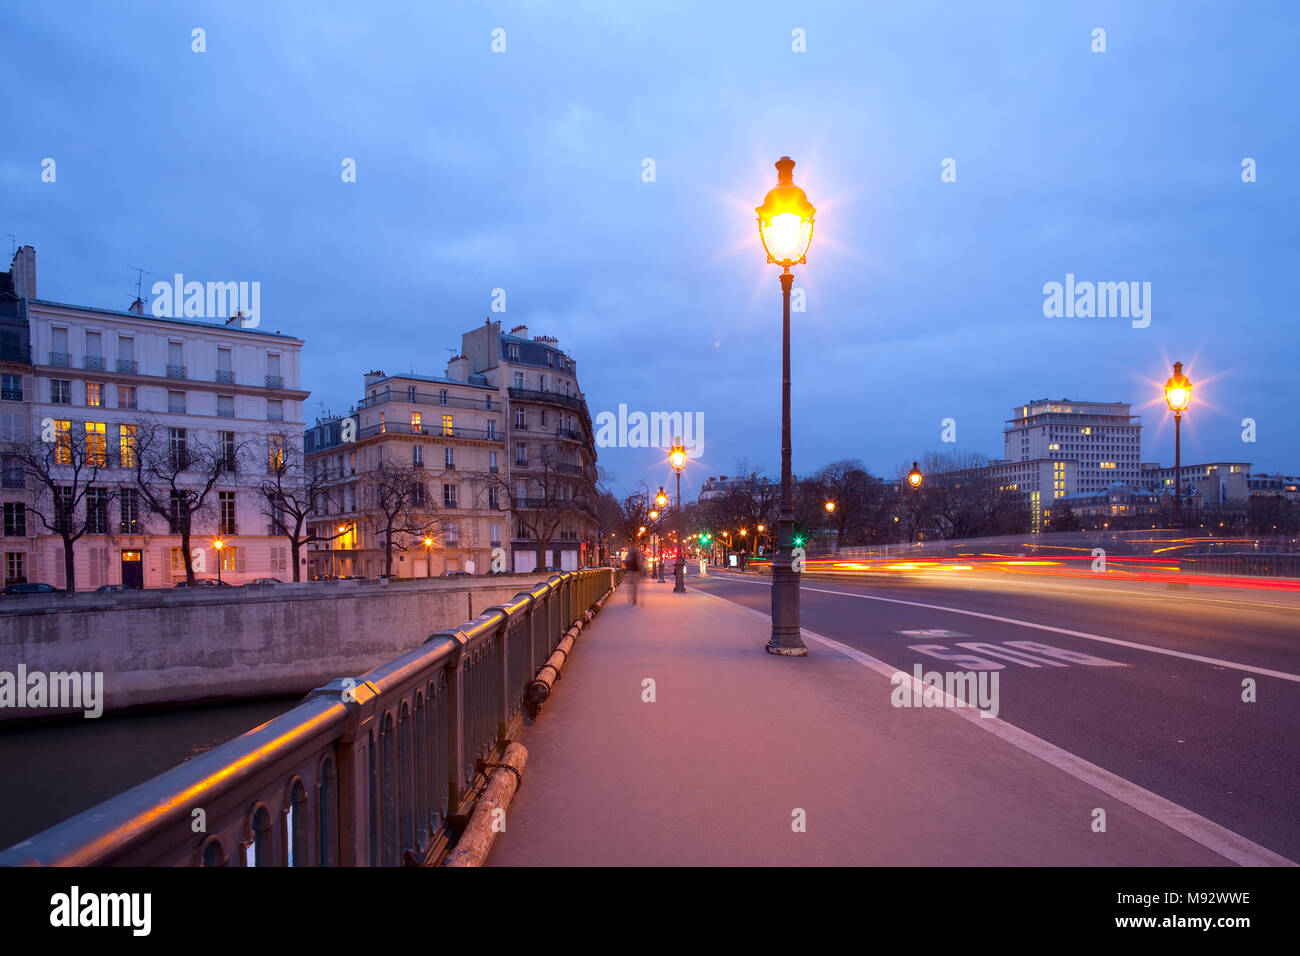 Pont de Sully bridge over Seine River, Ile Saint Louis, Paris, France - Stock Image